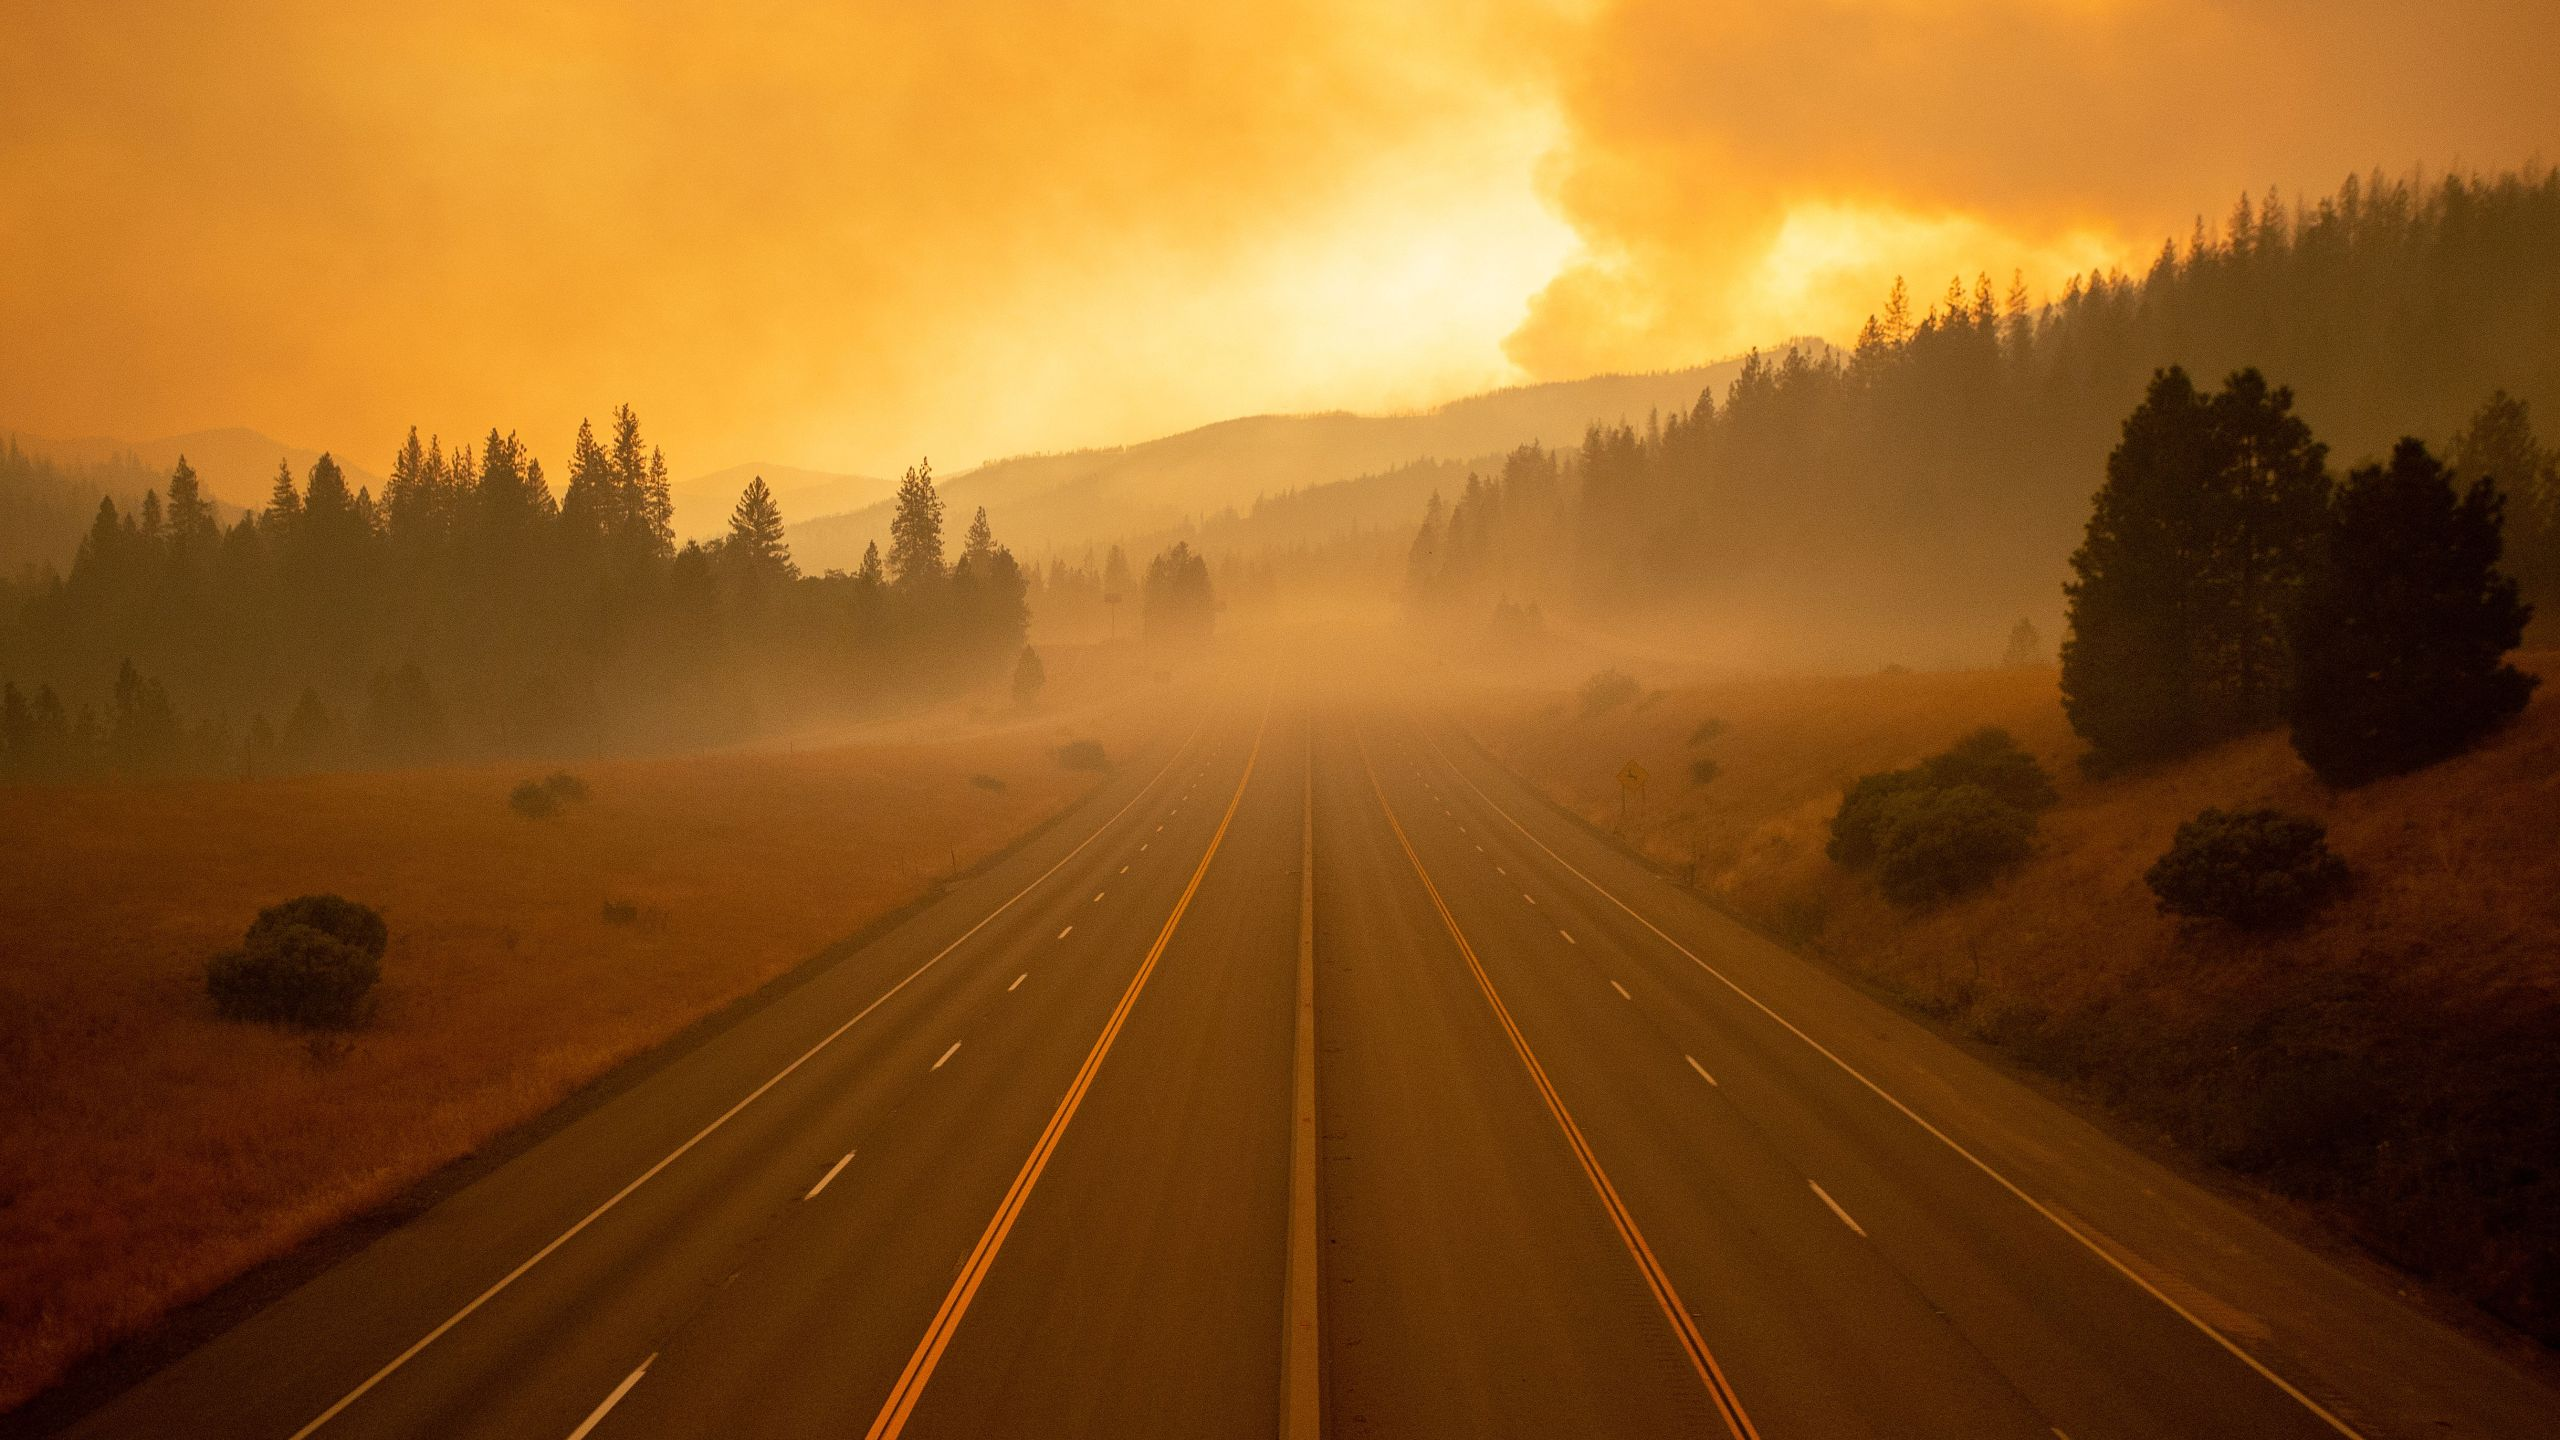 Interstate 5, which has been closed due to the Delta Fire, is seen completely empty in Lamoine in the Shasta Trinity National Forest, on September 6, 2018. (Credit: JOSH EDELSON/AFP/Getty Images)